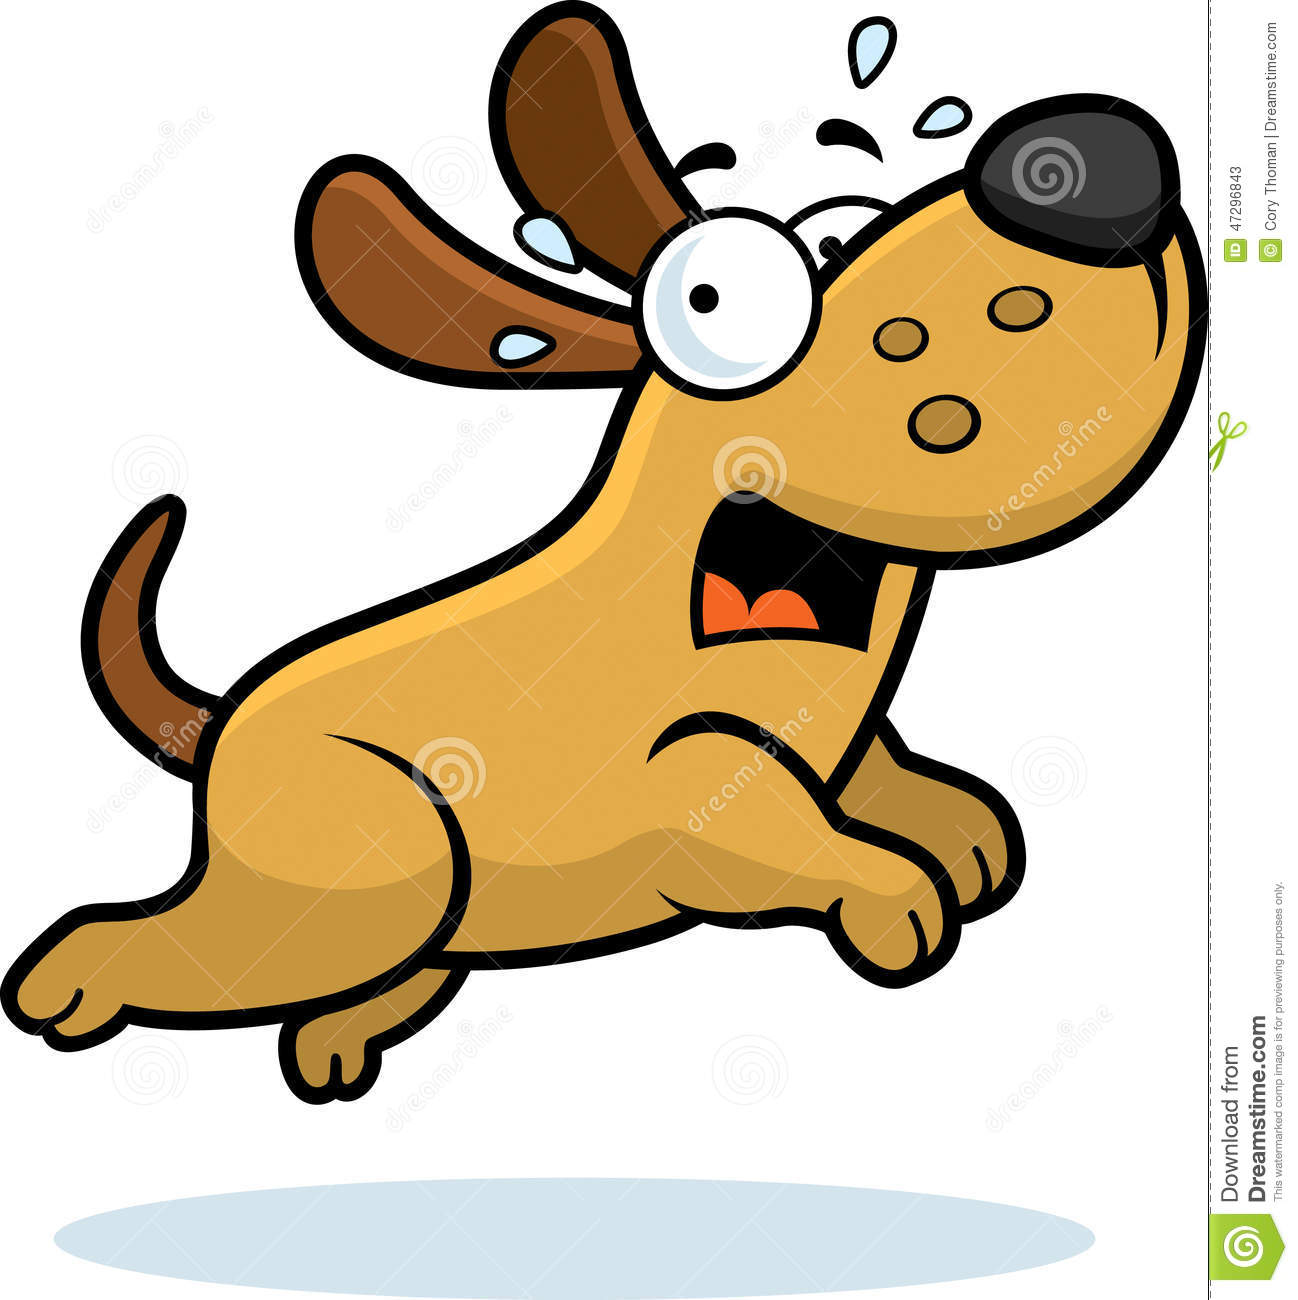 scared cartoon dog stock vector illustration of afraid 47296843 rh dreamstime com  dog running clipart black and white